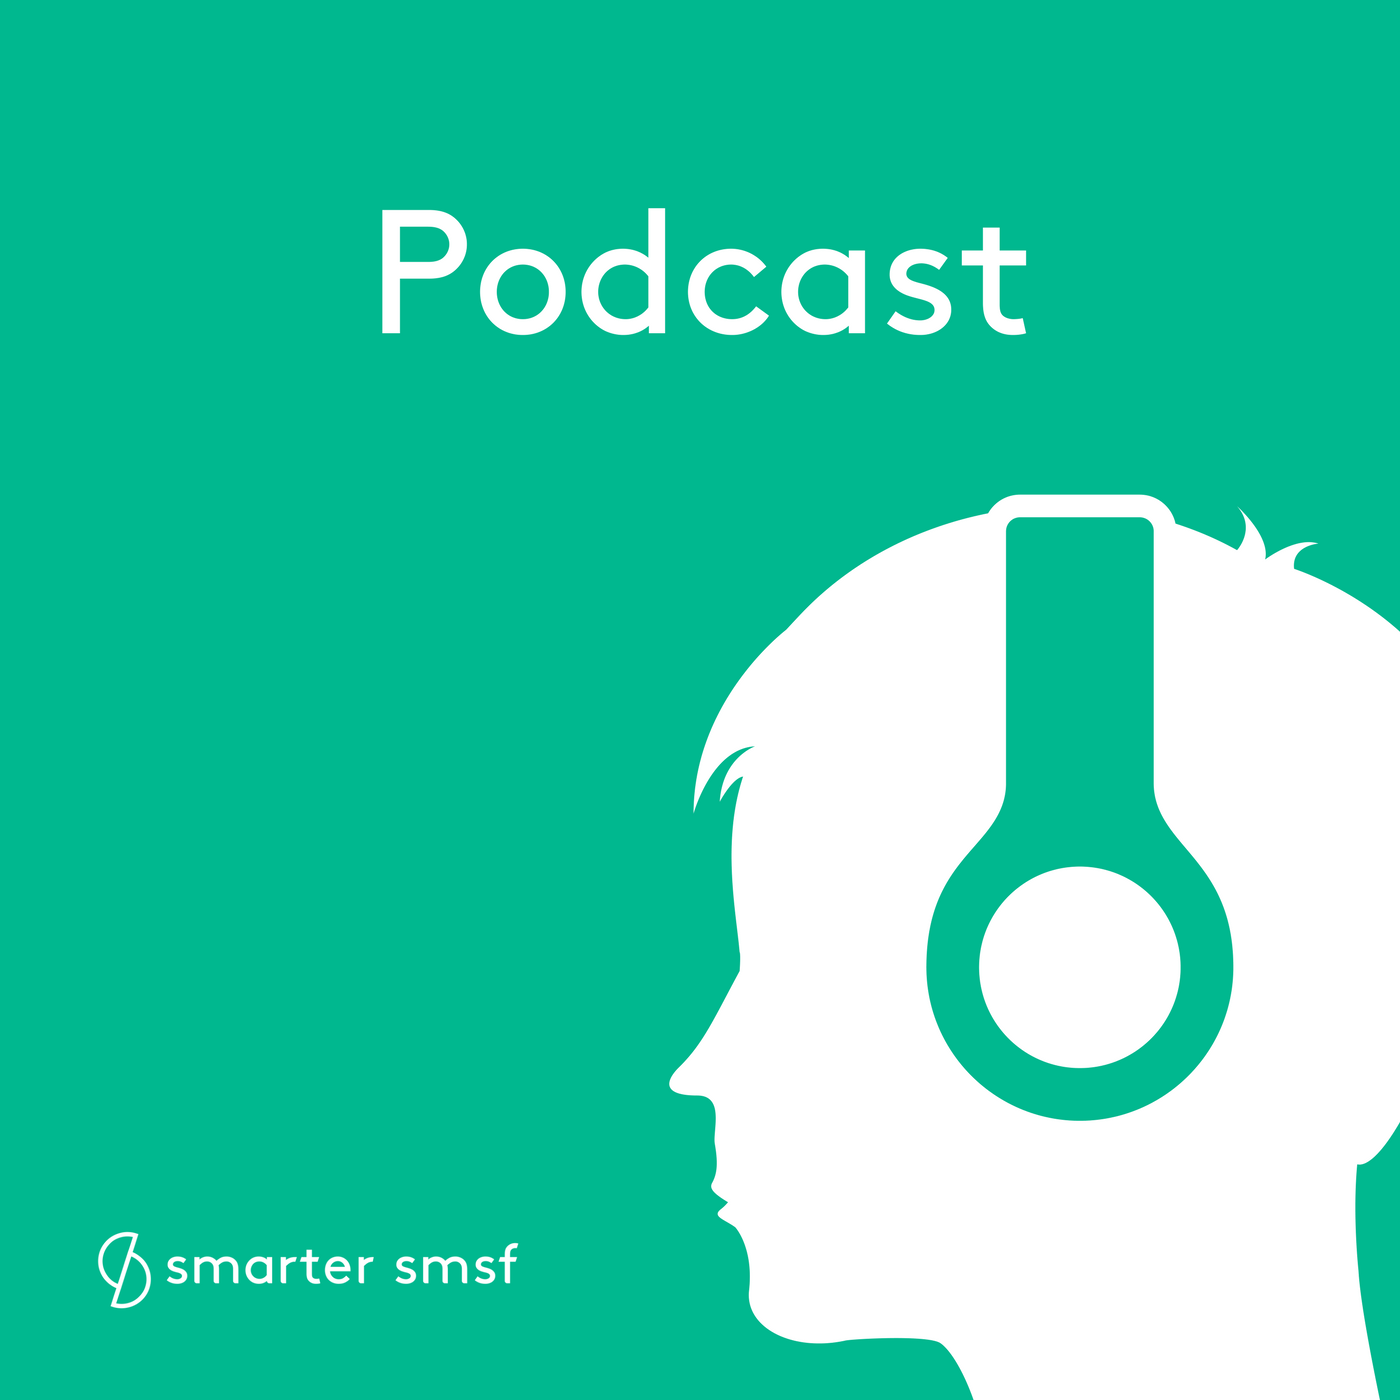 Episode 33 - Do pension SMSFs match their stereotype?